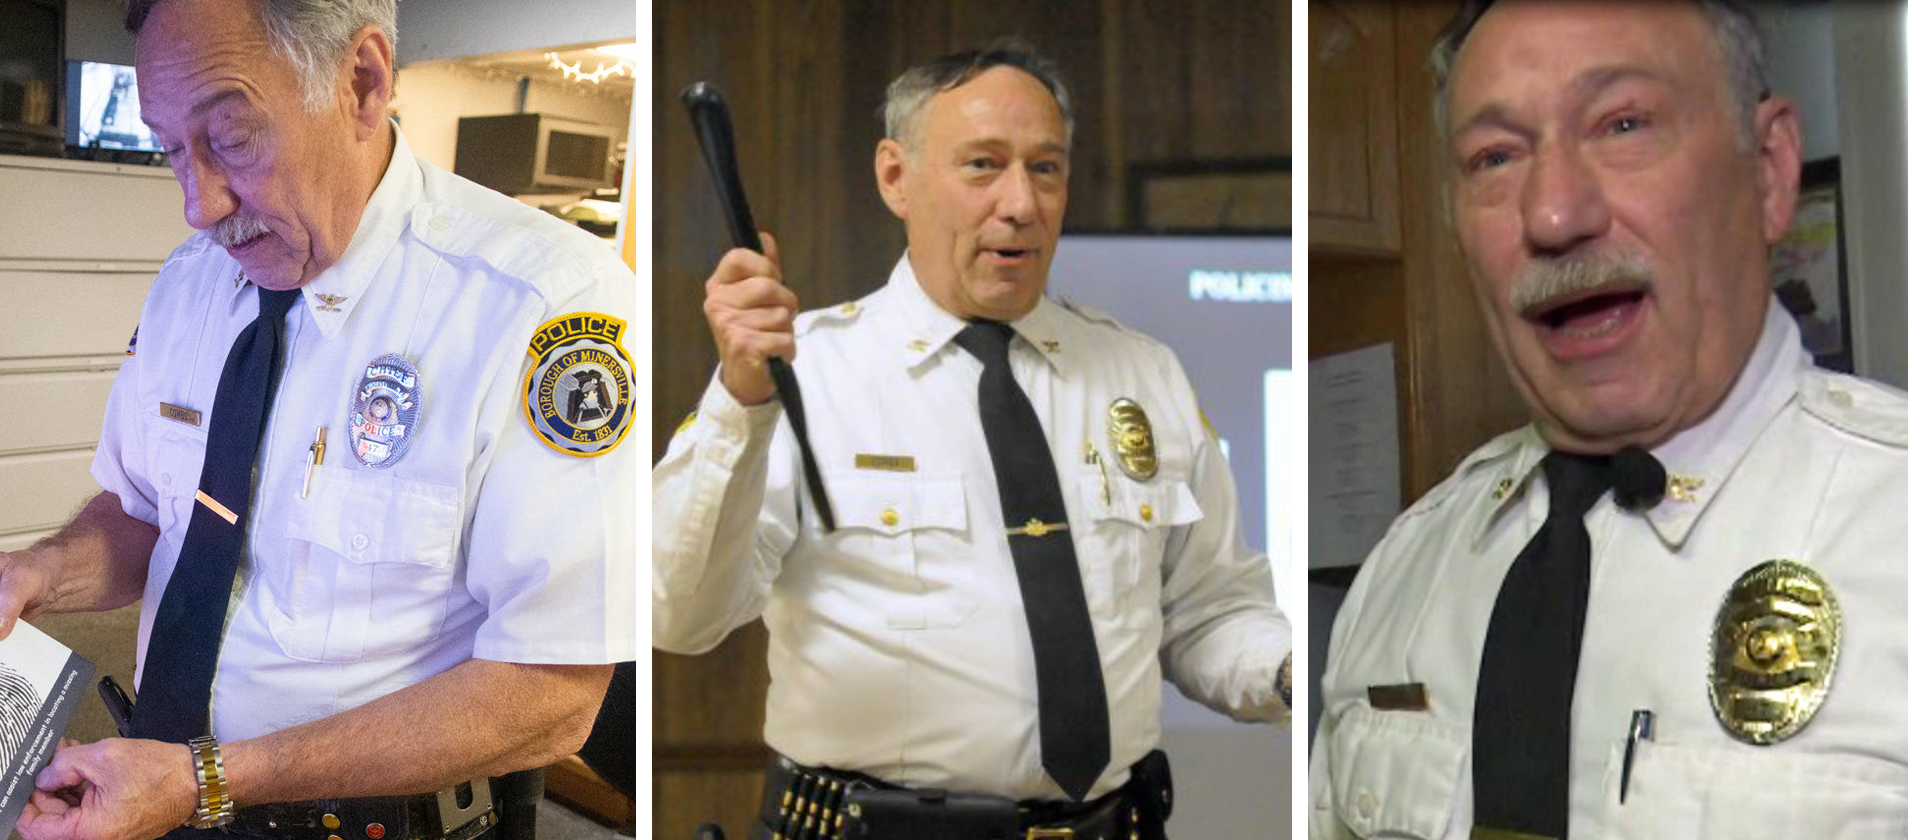 Three images of Michael Combs, Nazi Police Chief of the Minersville Police